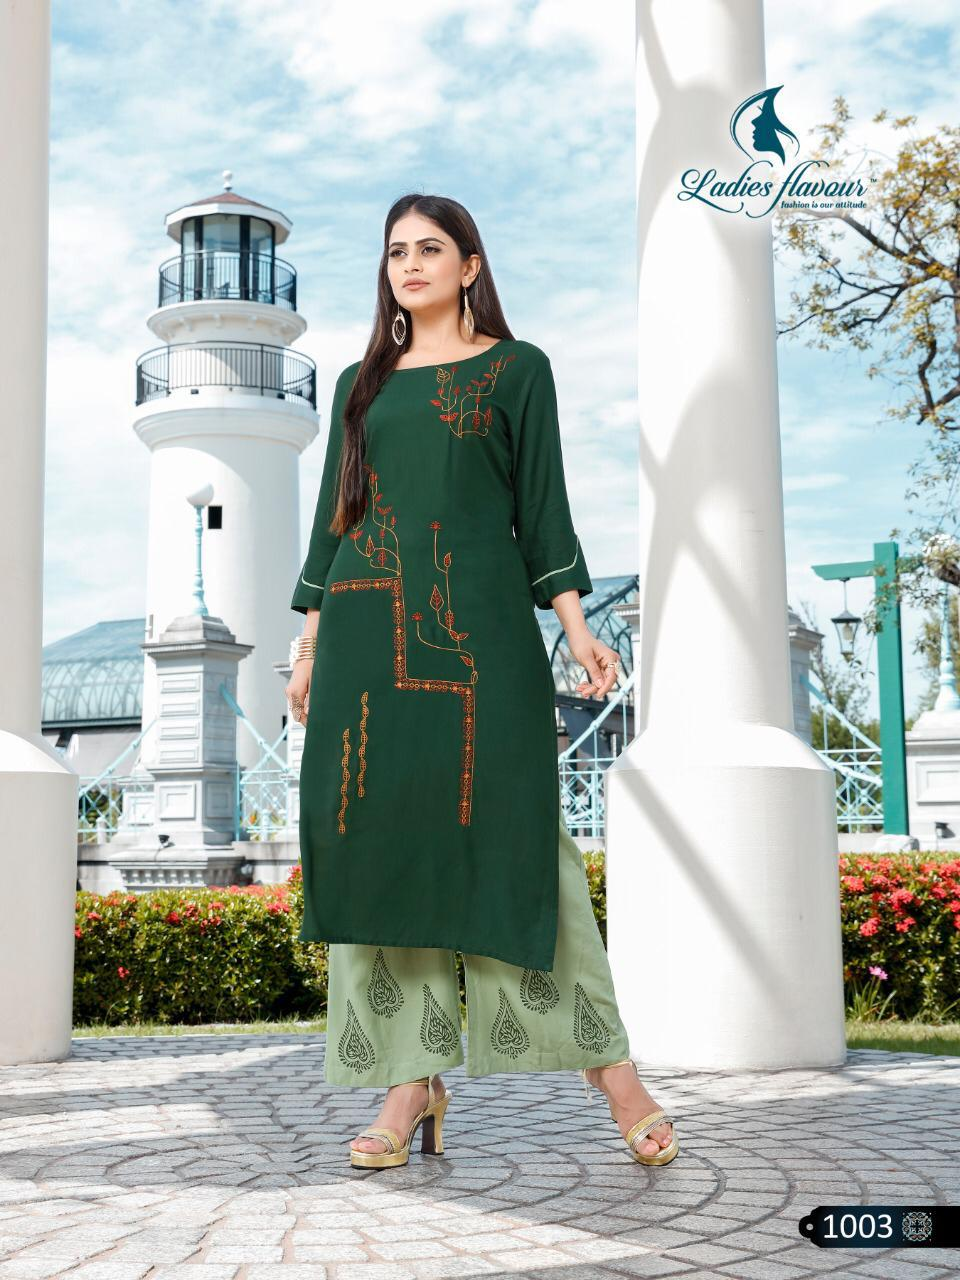 Ladies Flavour Signature Designer Rayon With Embroidery Work Readymade Kurtis With Palazzo At Wholesale Rate